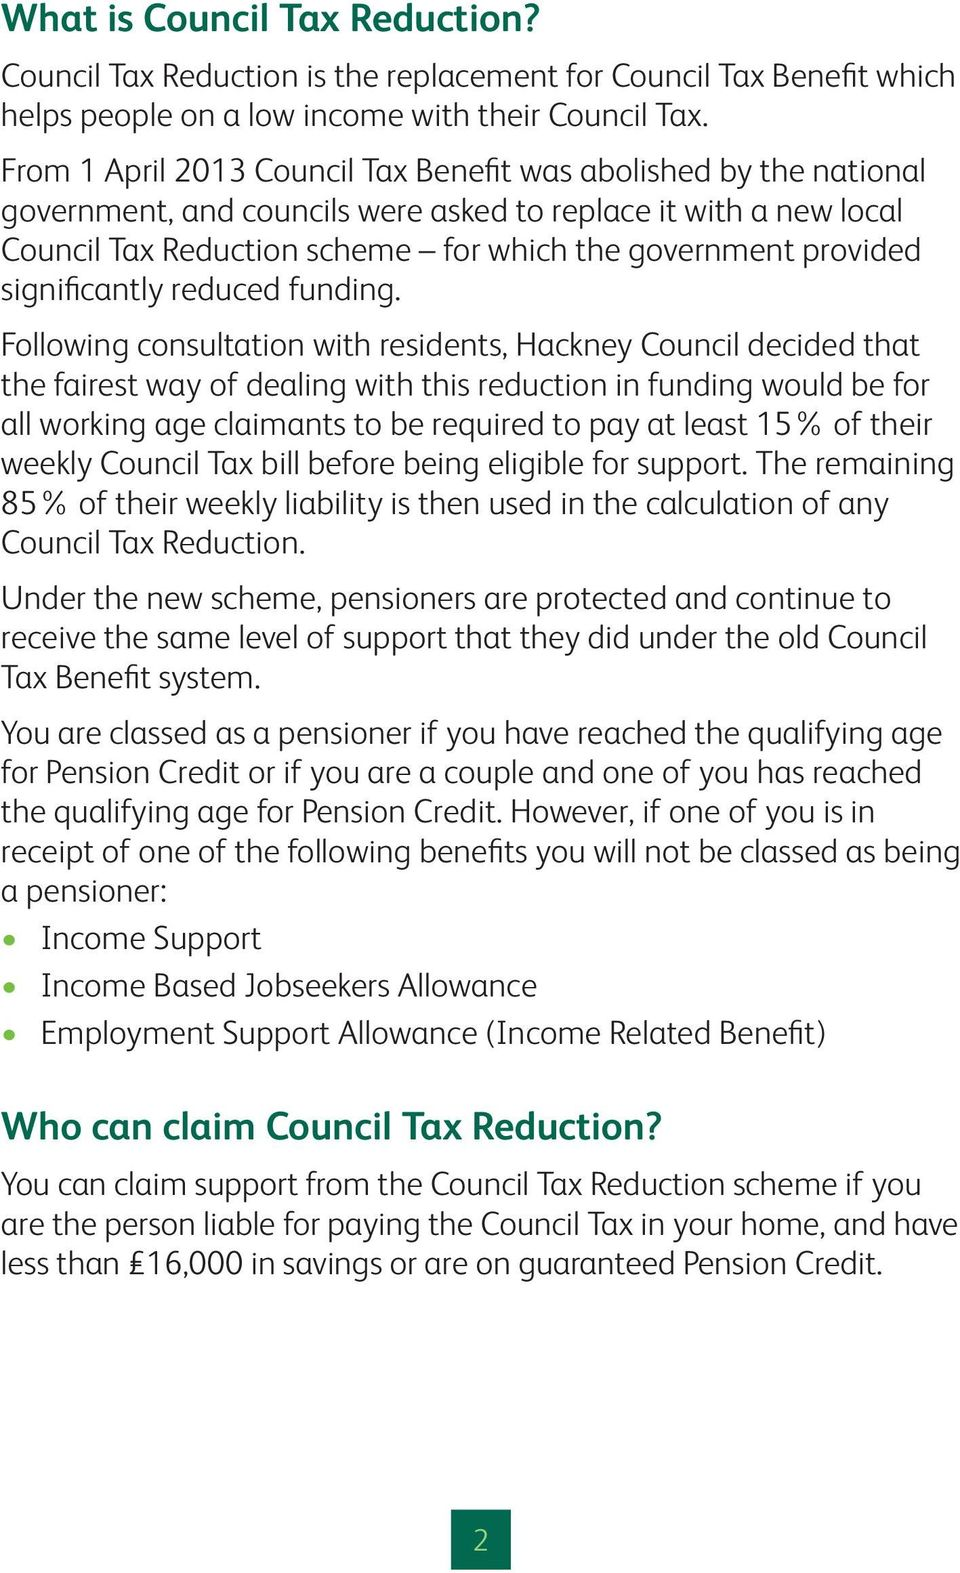 A guide to Council Tax Reduction - PDF